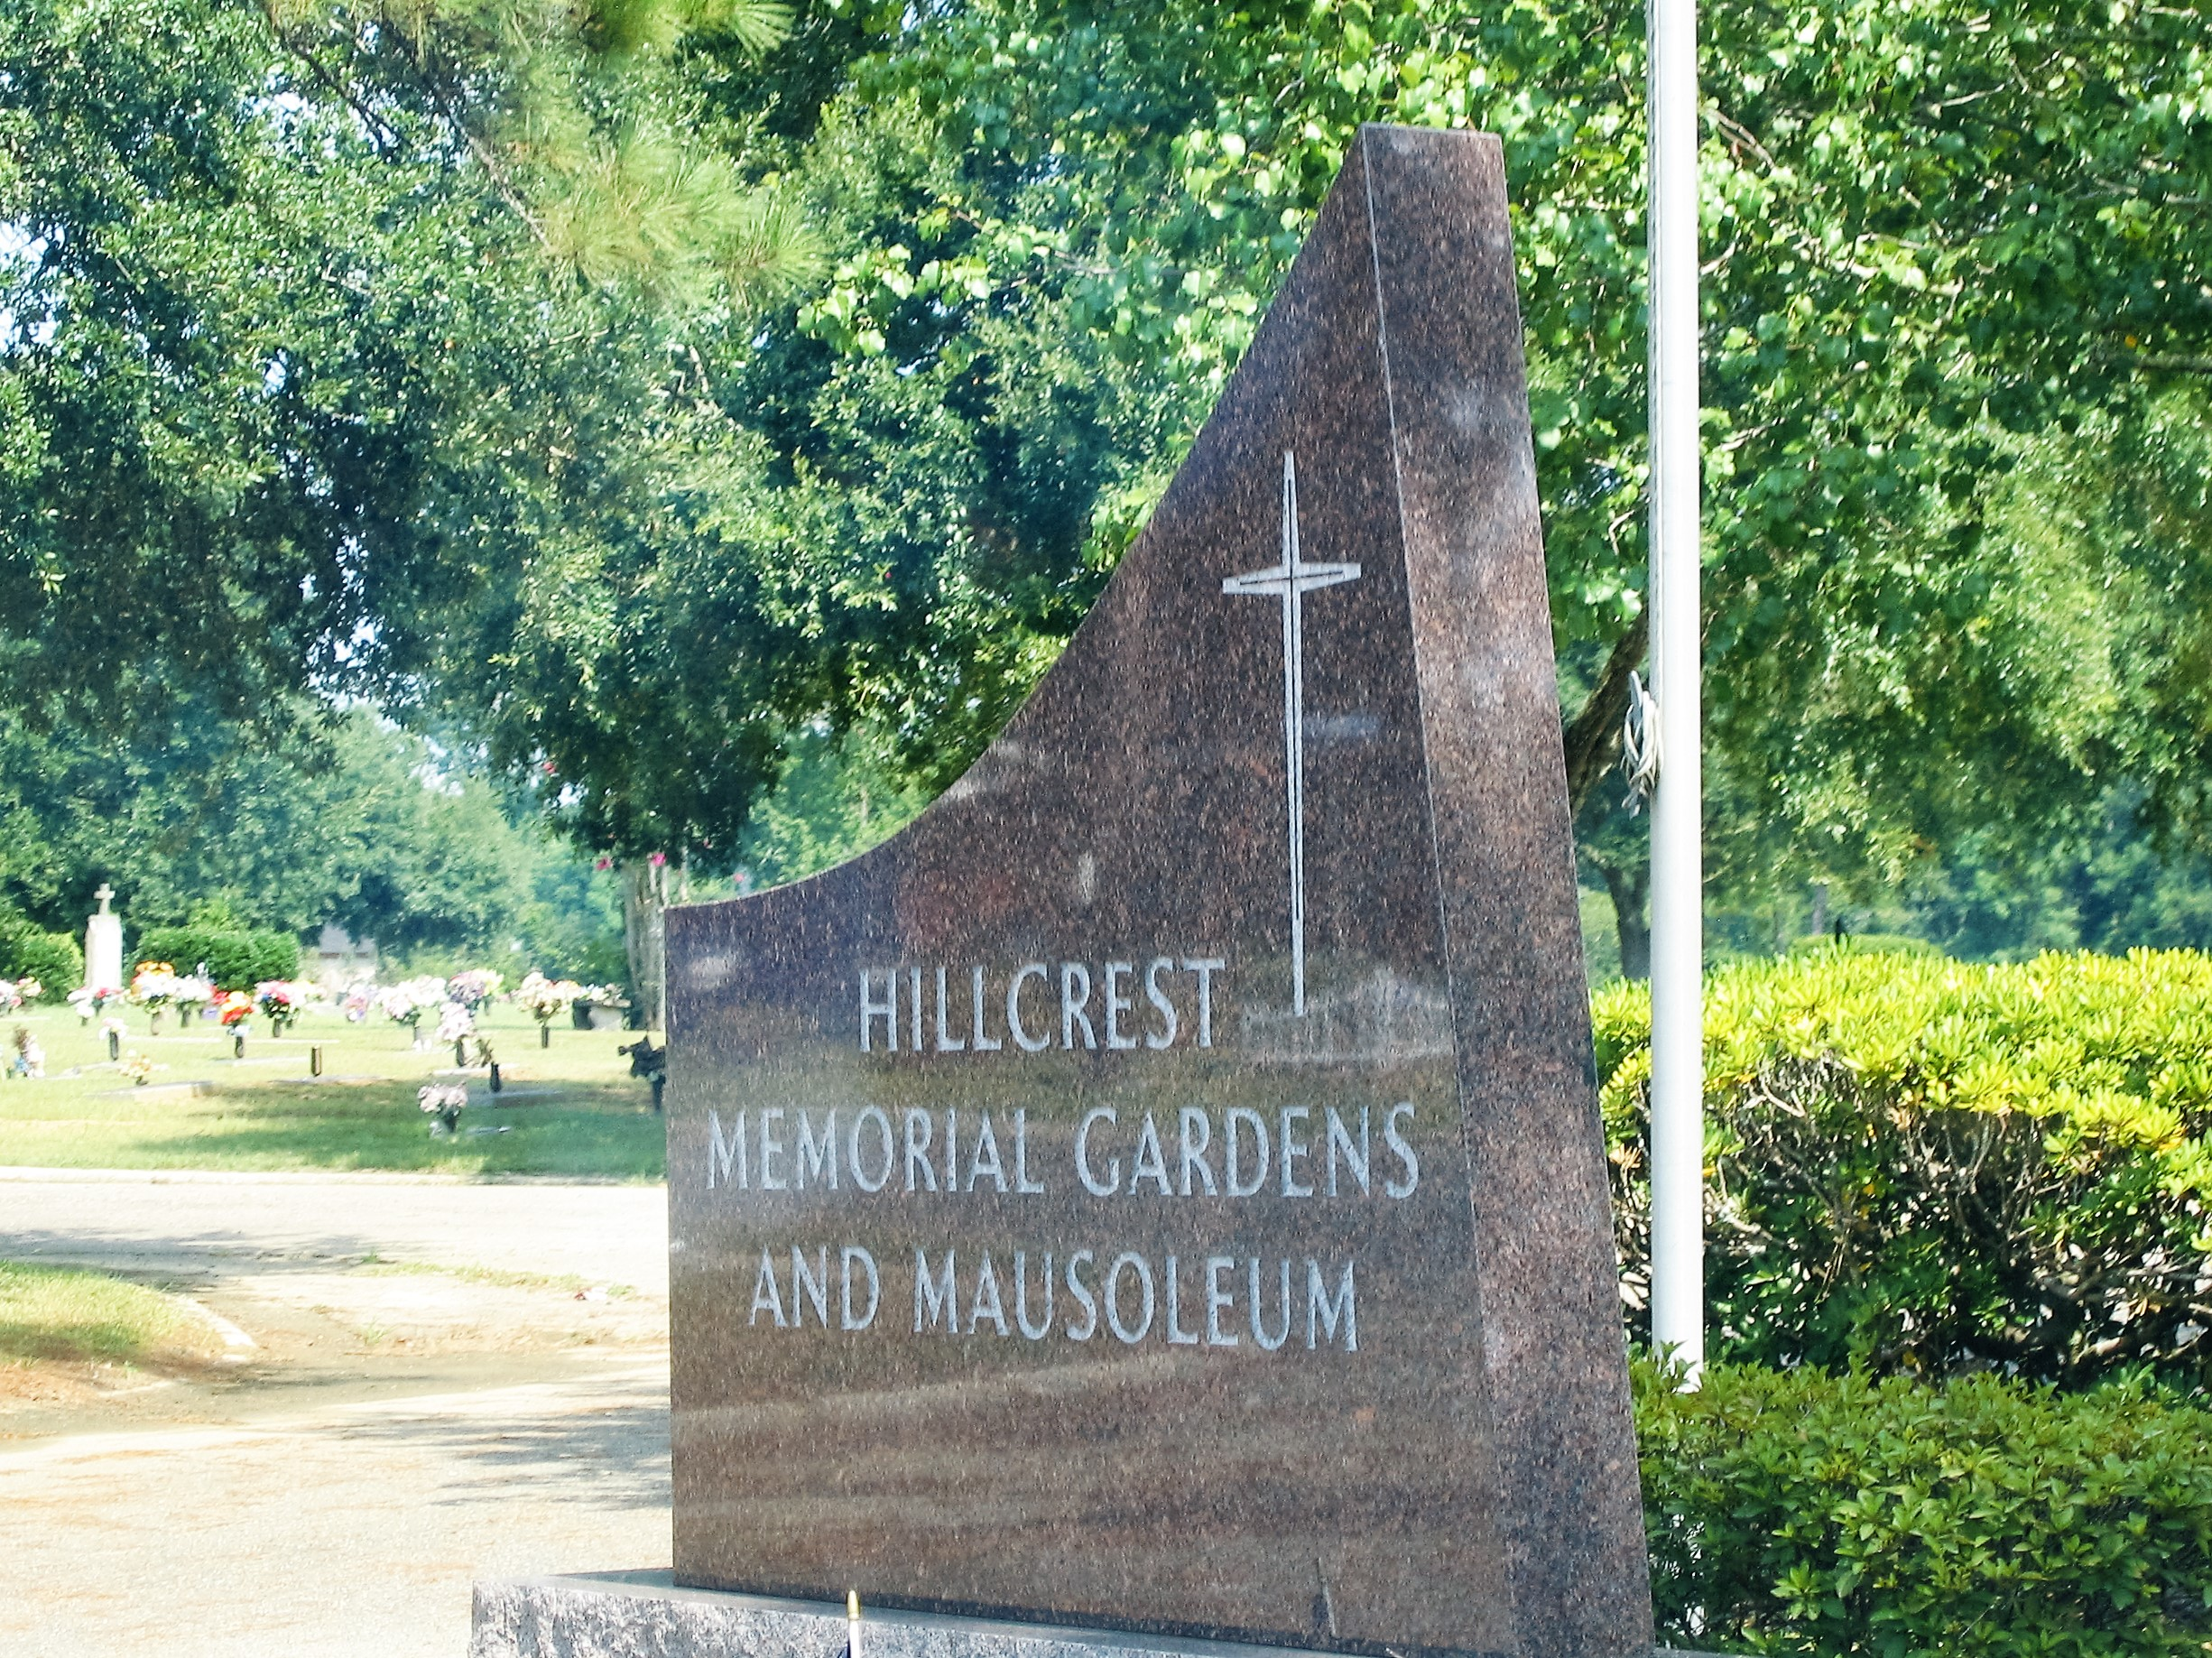 Hillcrest Memorial Gardens and Mausoleum